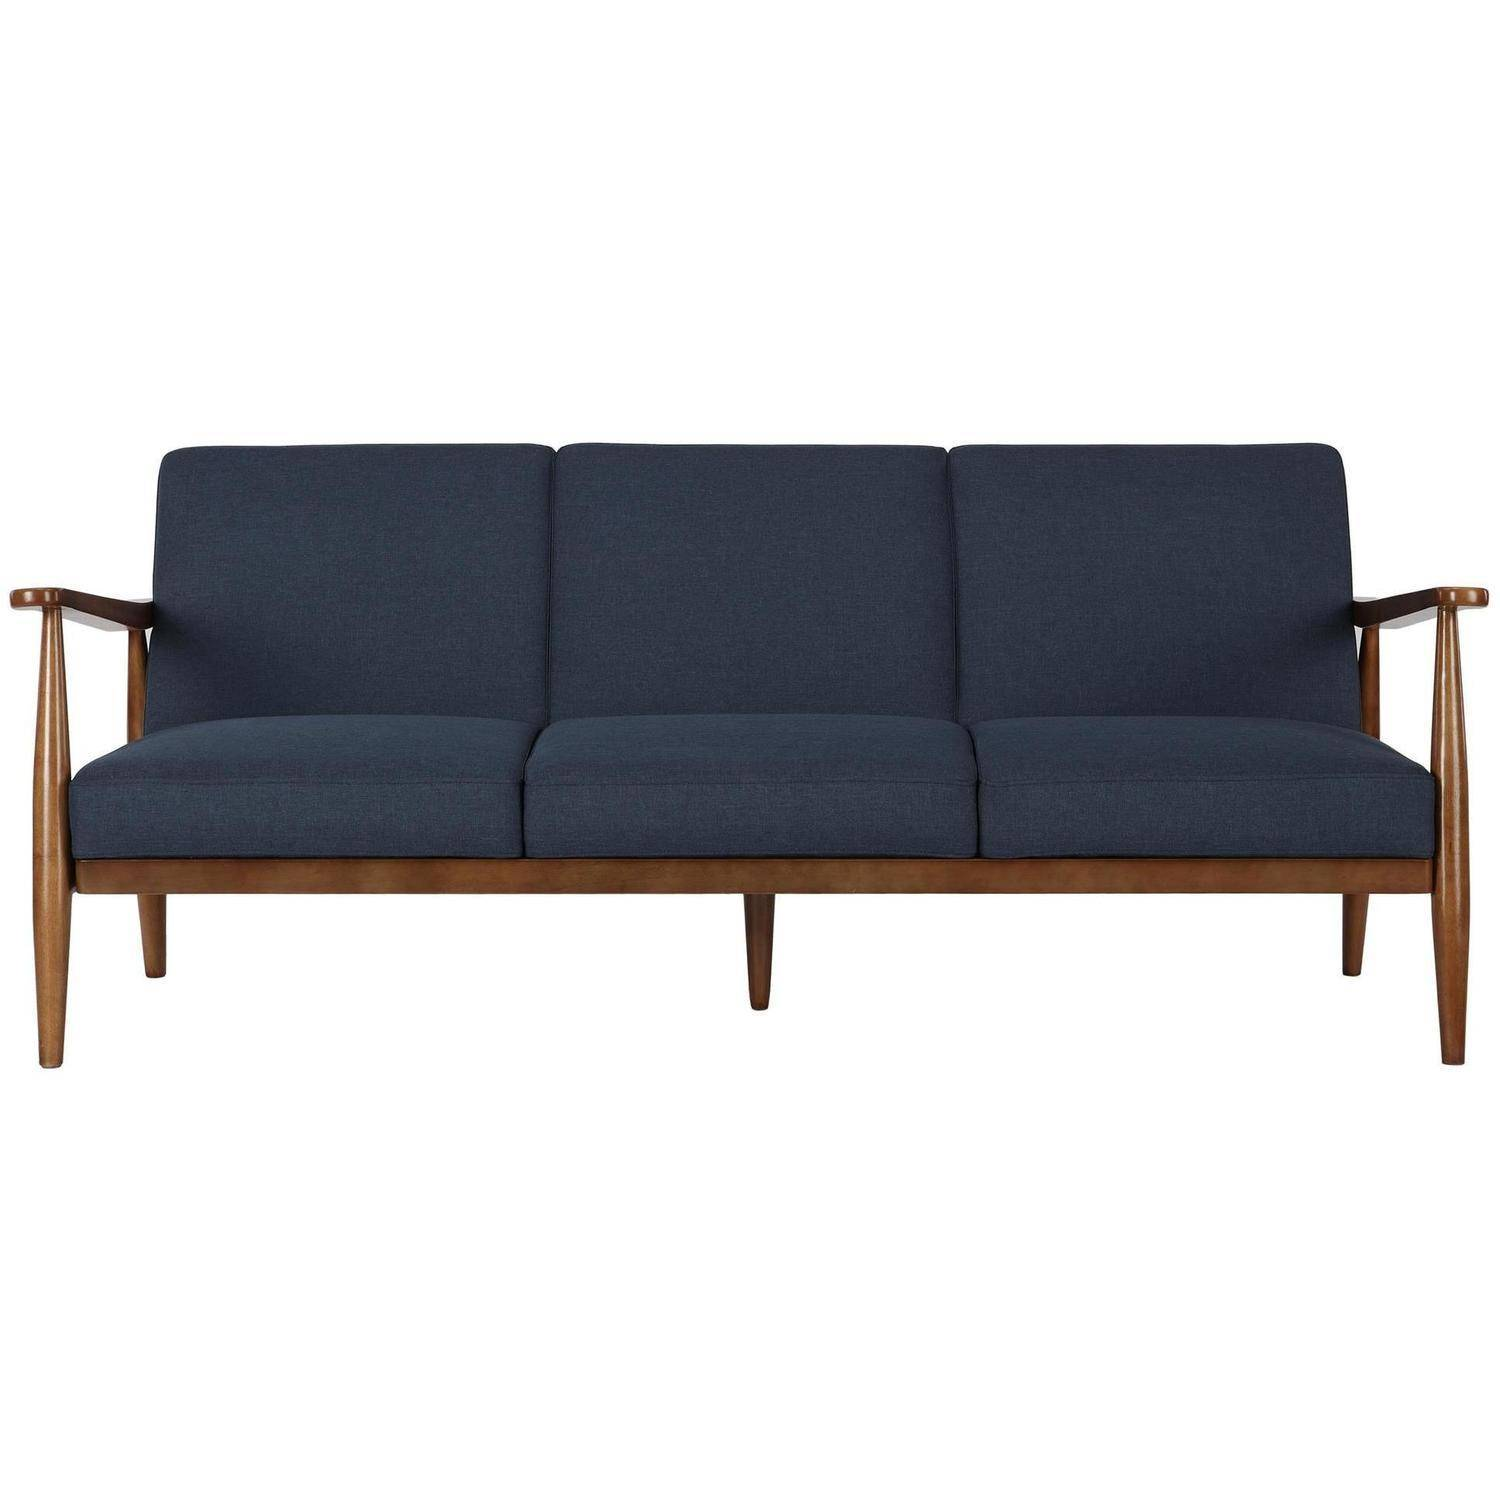 Better Homes and Gardens Flynn Mid Century Futon, Multiple Colors by Dorel Home Products